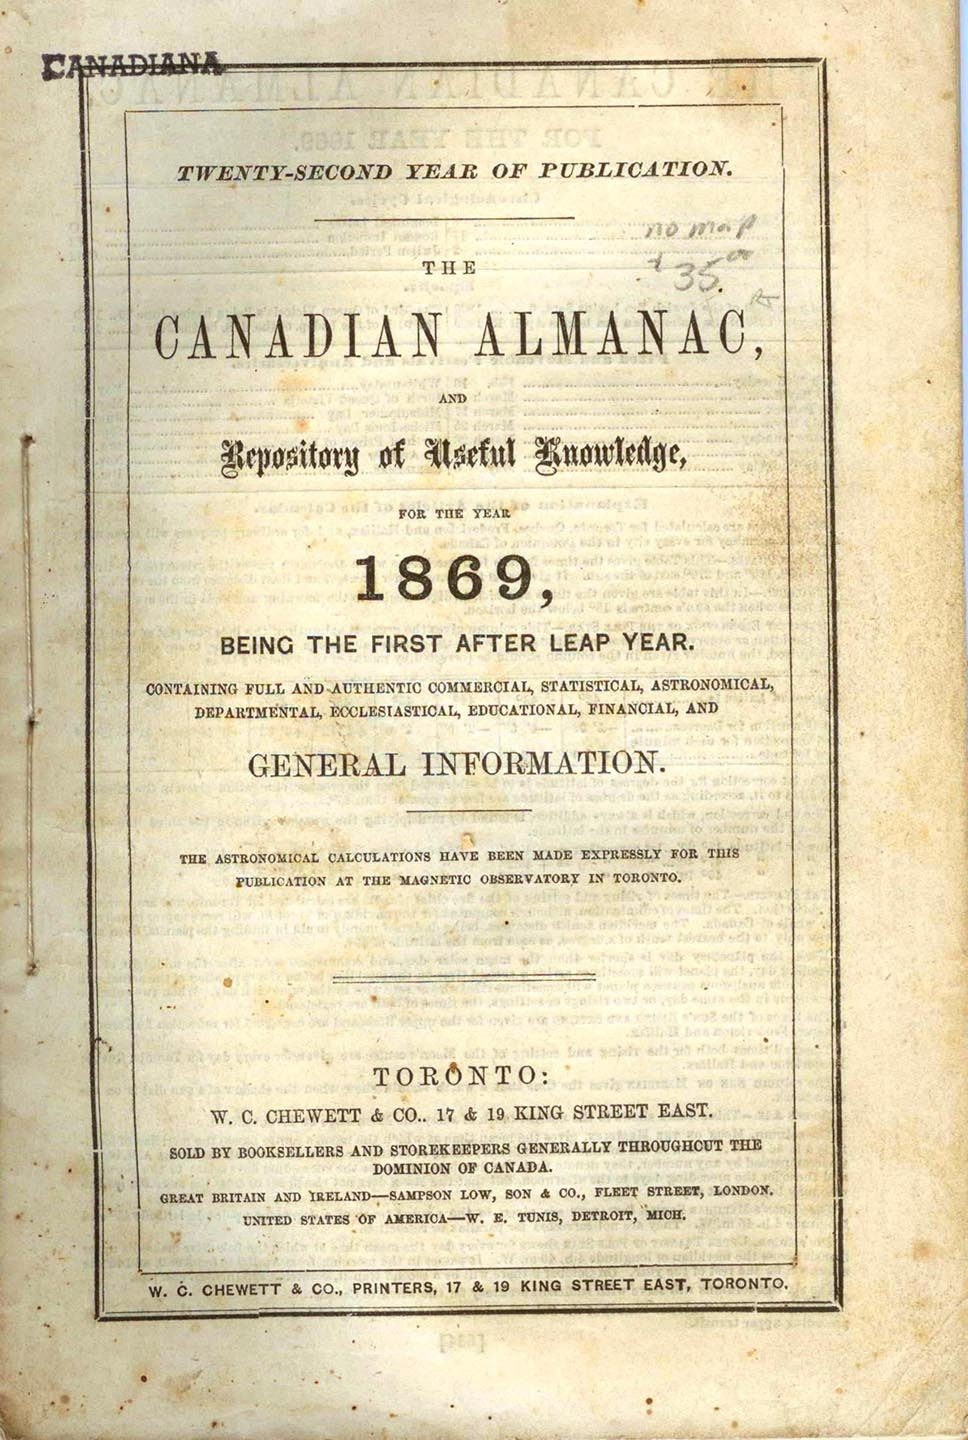 The Canadian Almanac, and Repository of Useful Knowledge for the Year 1869